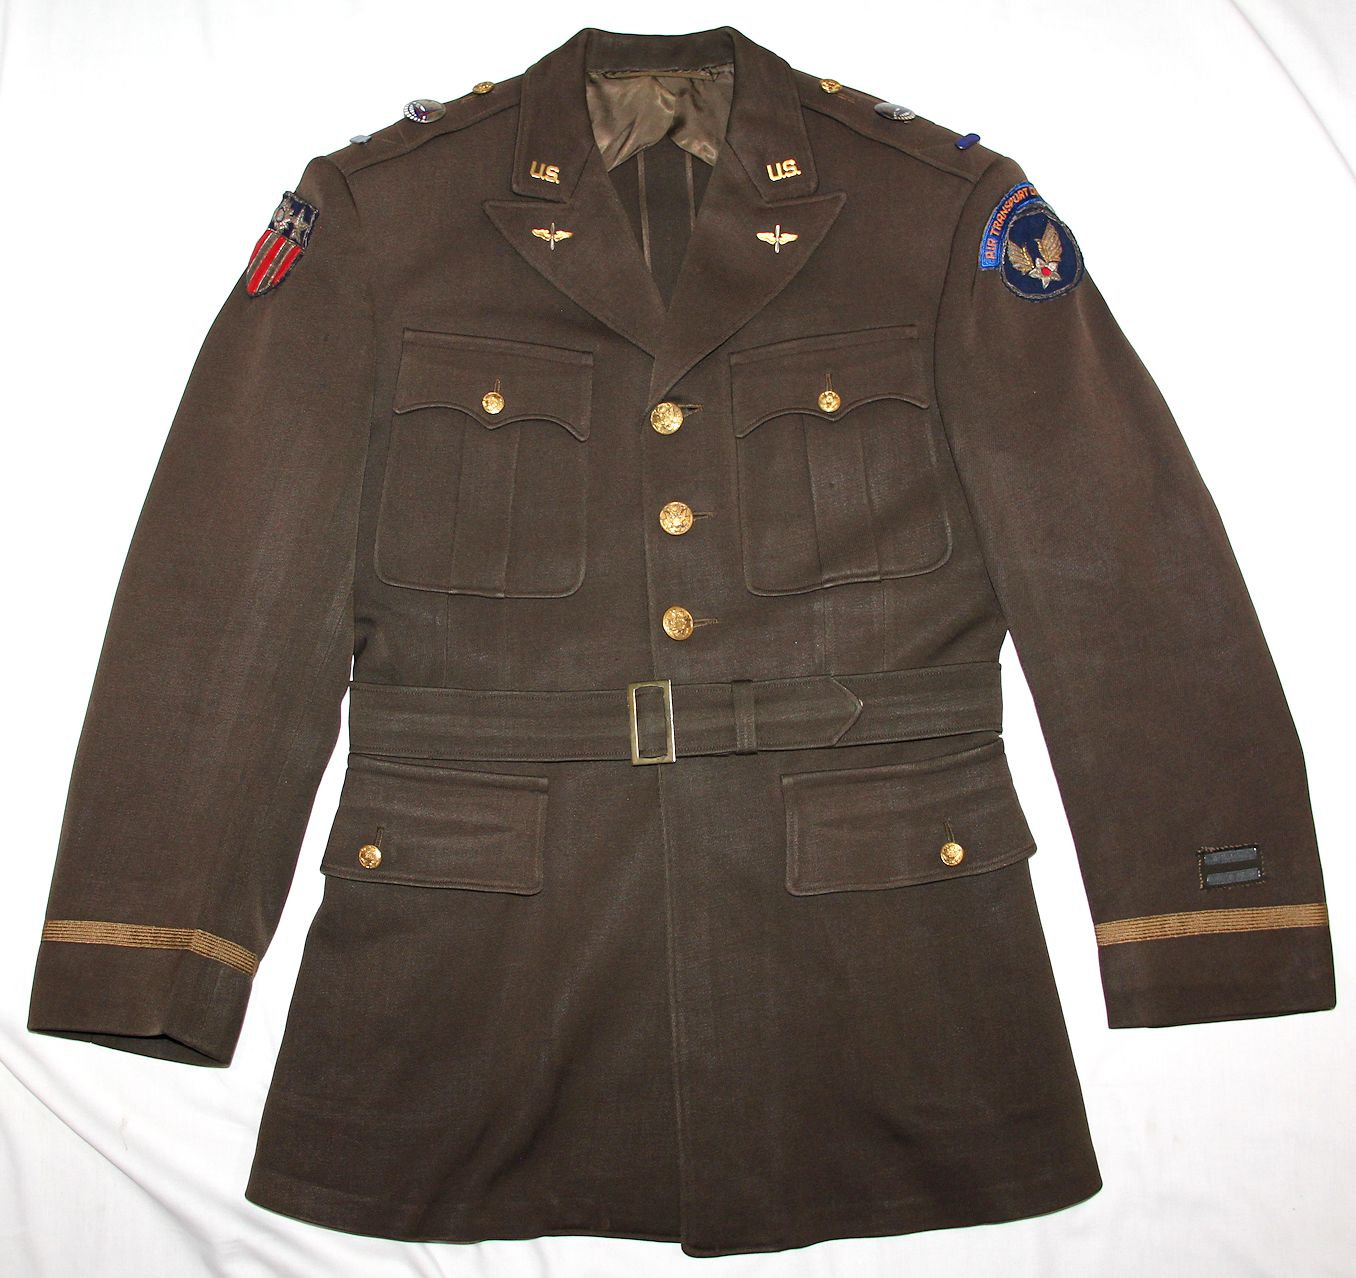 Archive Of Previously SOLD Items :: 71st Assault